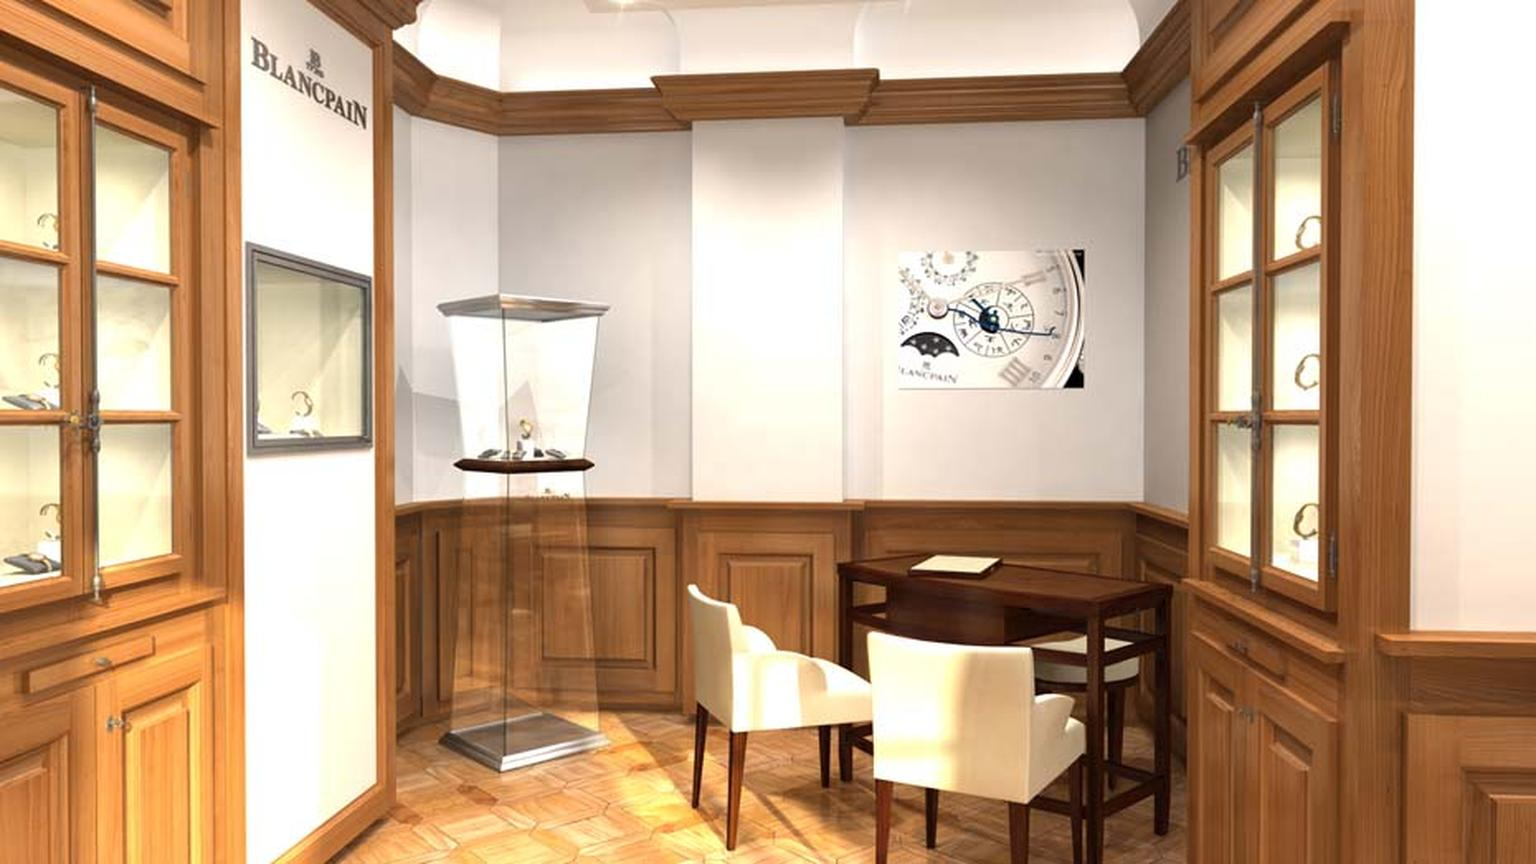 Blancpain has just opened two new boutiques in London: a flagship boutique at 11 New Bond Street (pictured) and a franchise in the Fine Watch Room of Harrods department store.